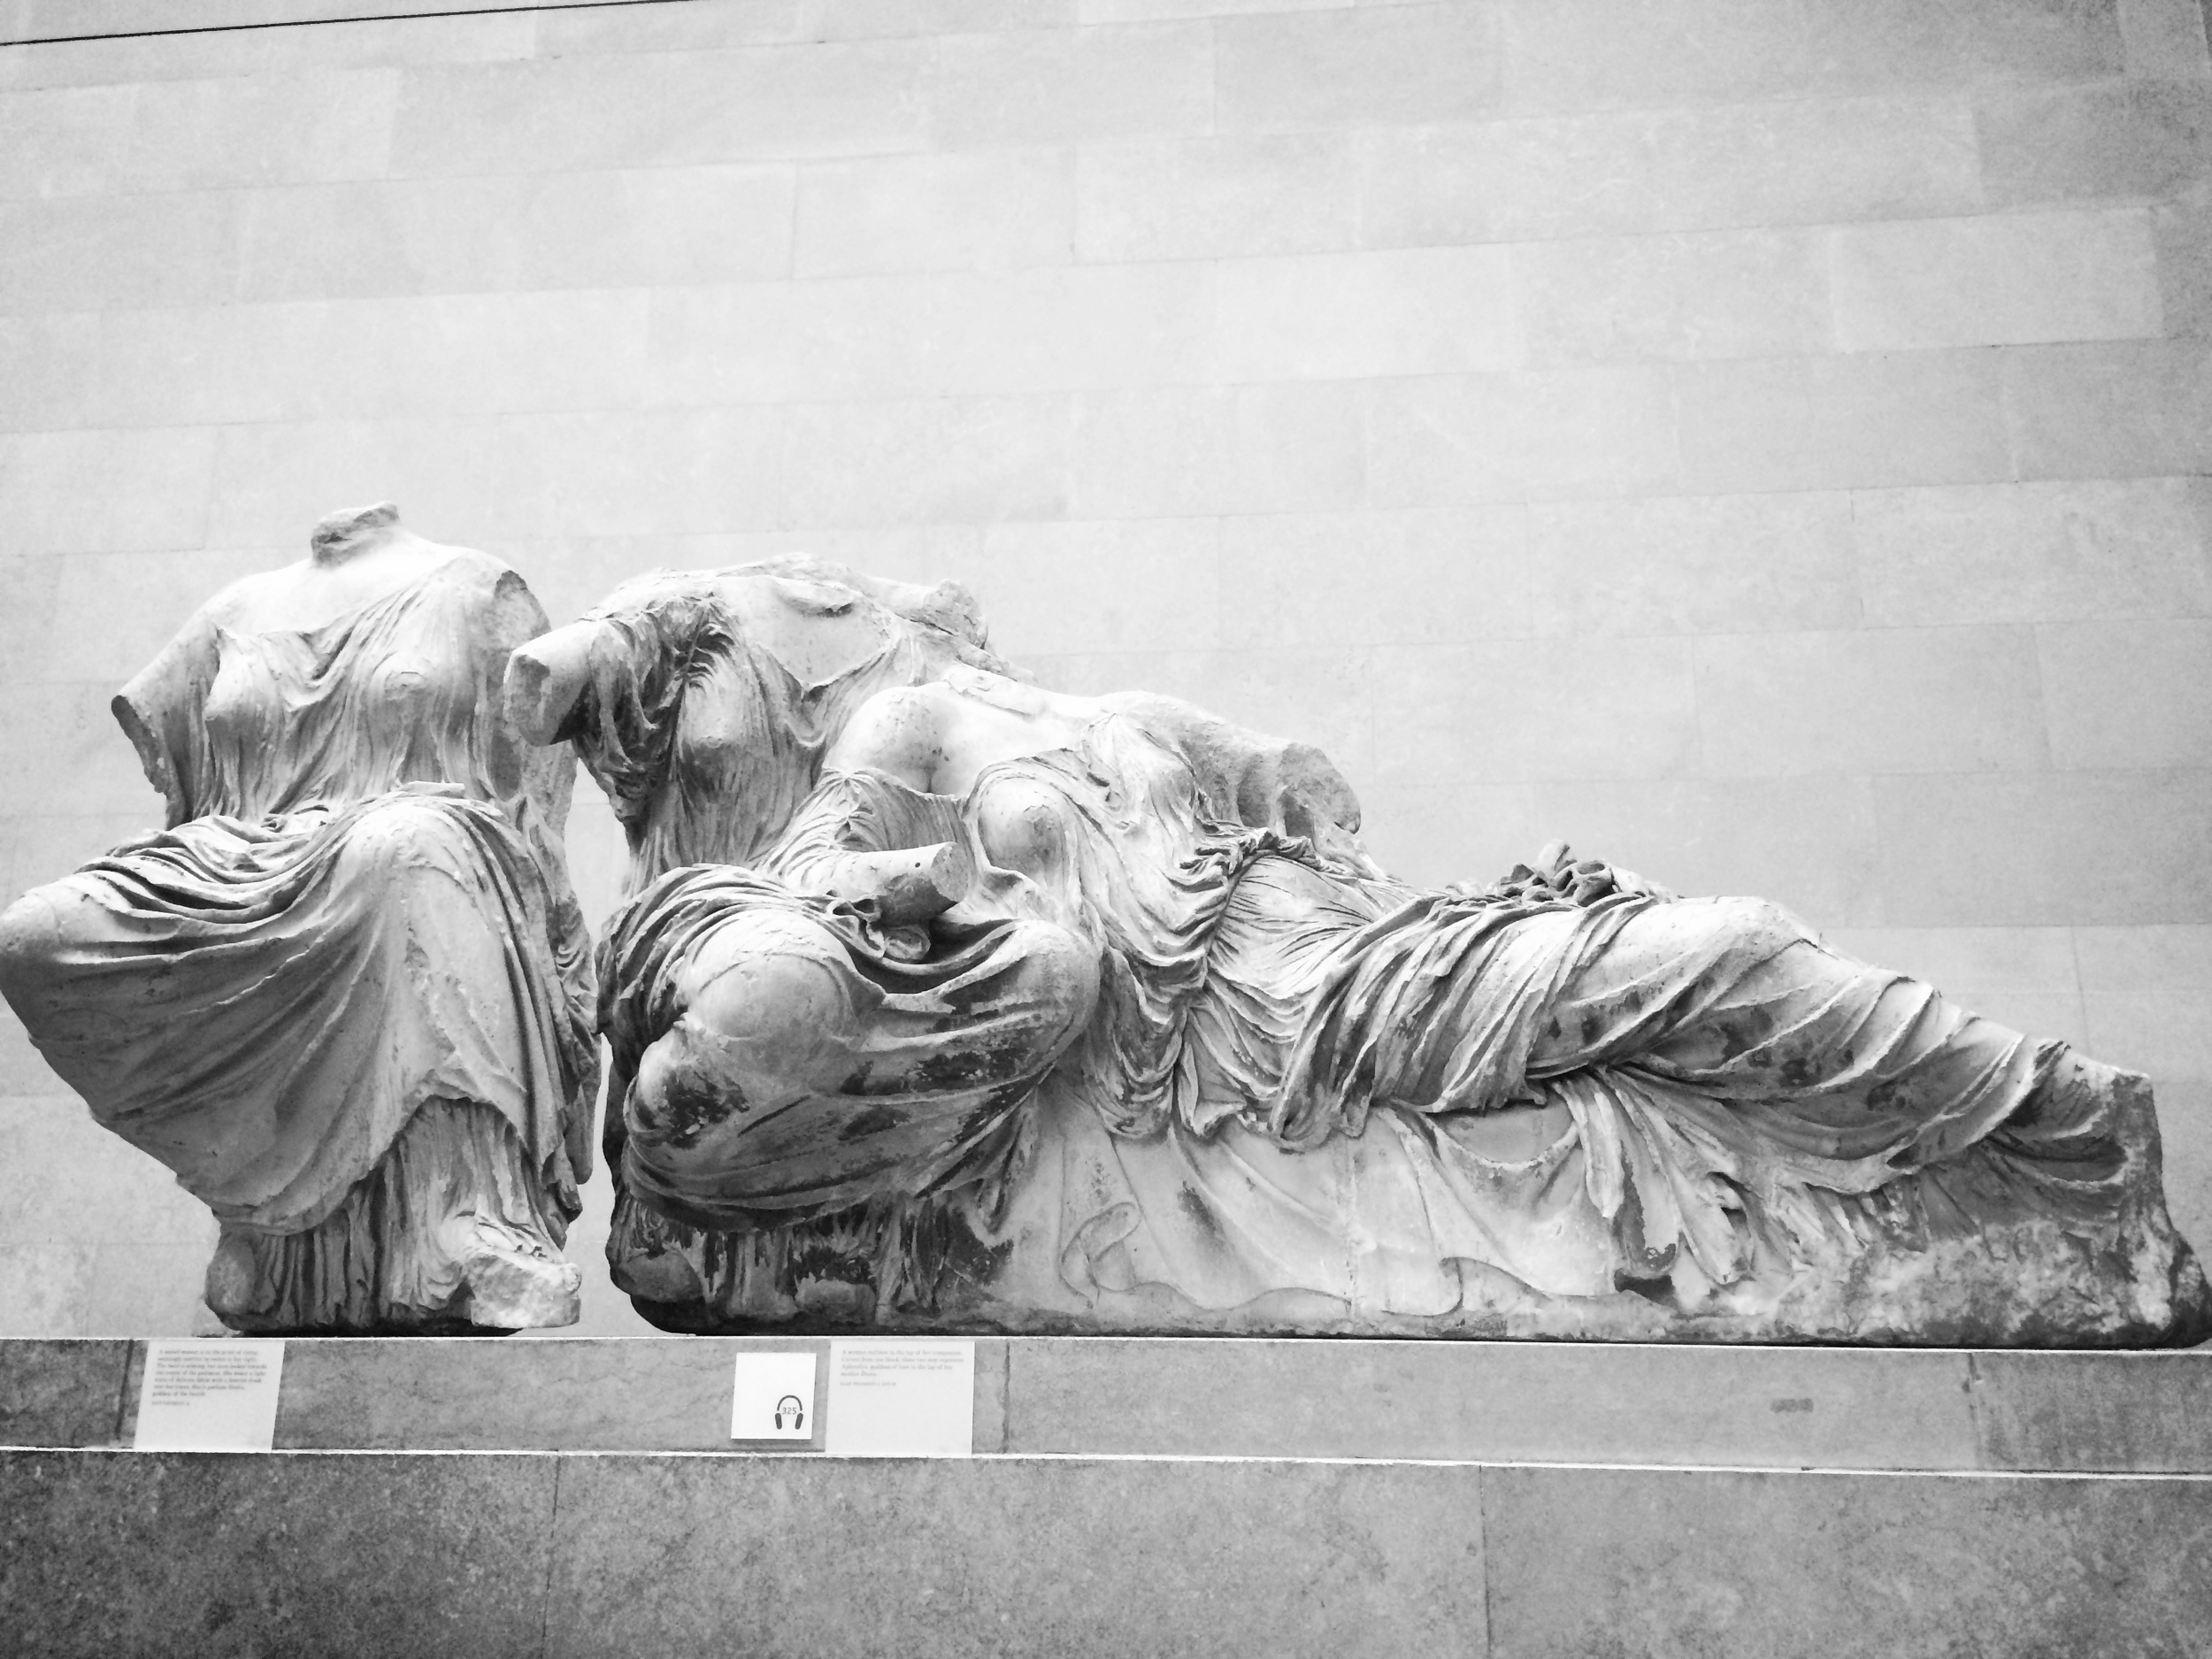 Hanging out with the Elgin Marbles